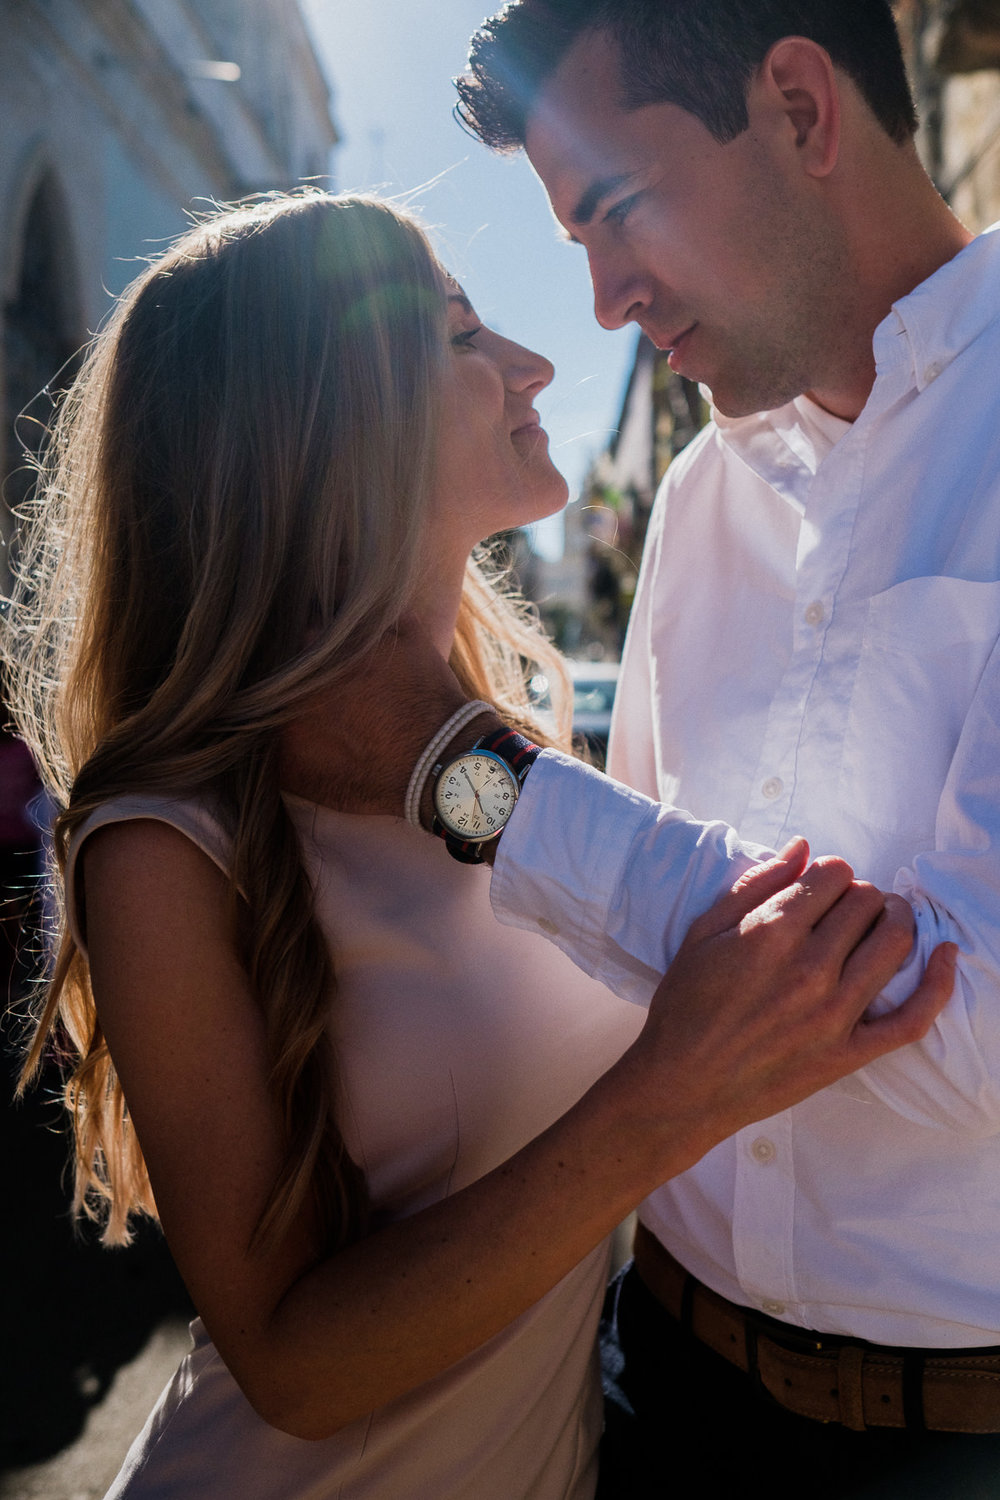 destination engagement photography in old havana, cuba by wedding photographer danny k